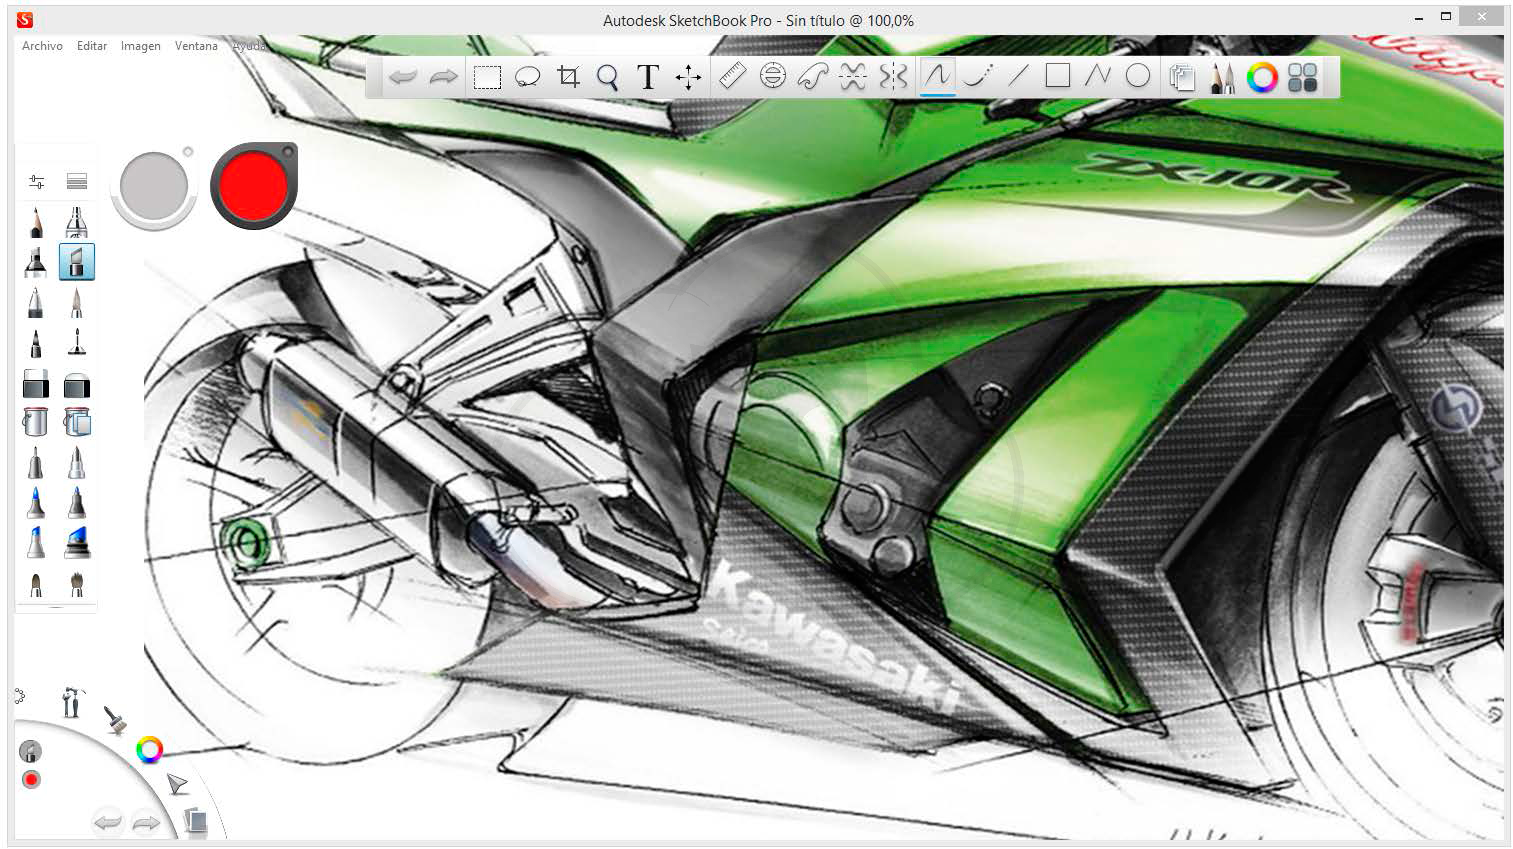 Autodesk Sketchbook Pro 3 2 Apk Is Here Latest On Hax